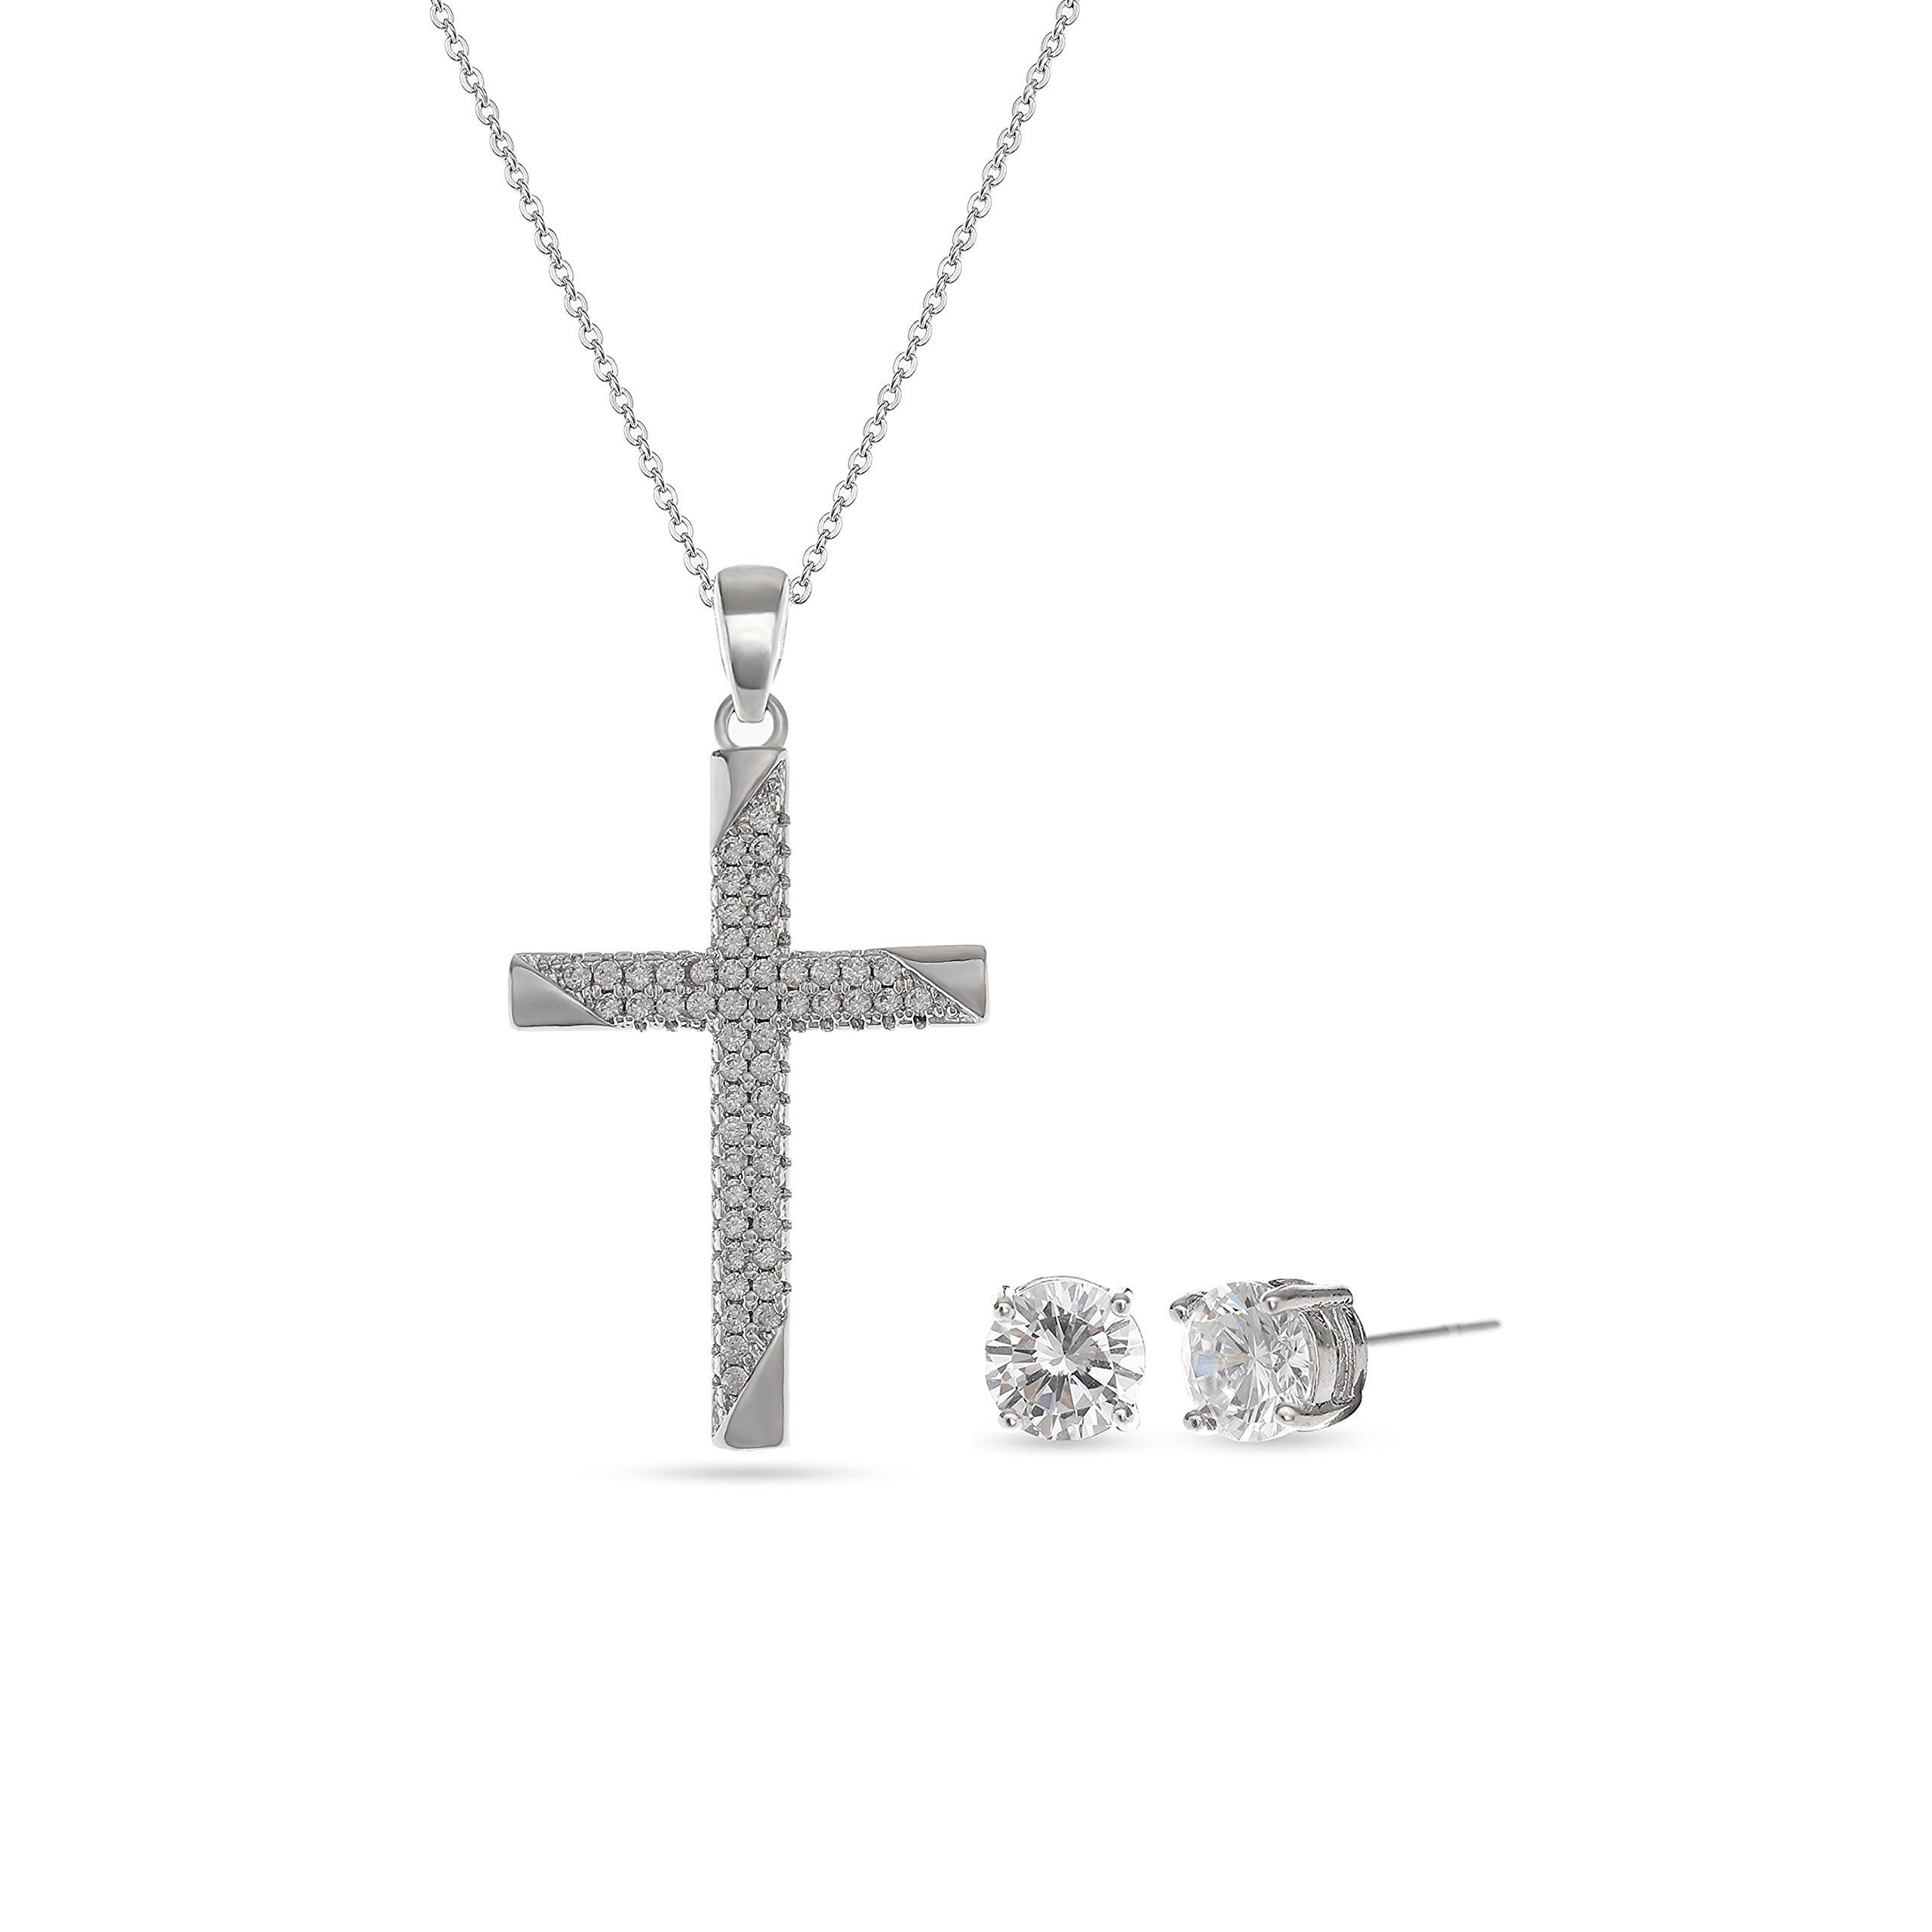 MYKEA 925 Sterling Silver Cross Pendant Necklace with Round Diamond Cubic Zirconia Stud Earrings Jewelry Set for Women Birthdays,Anniversaries, Mother's Day